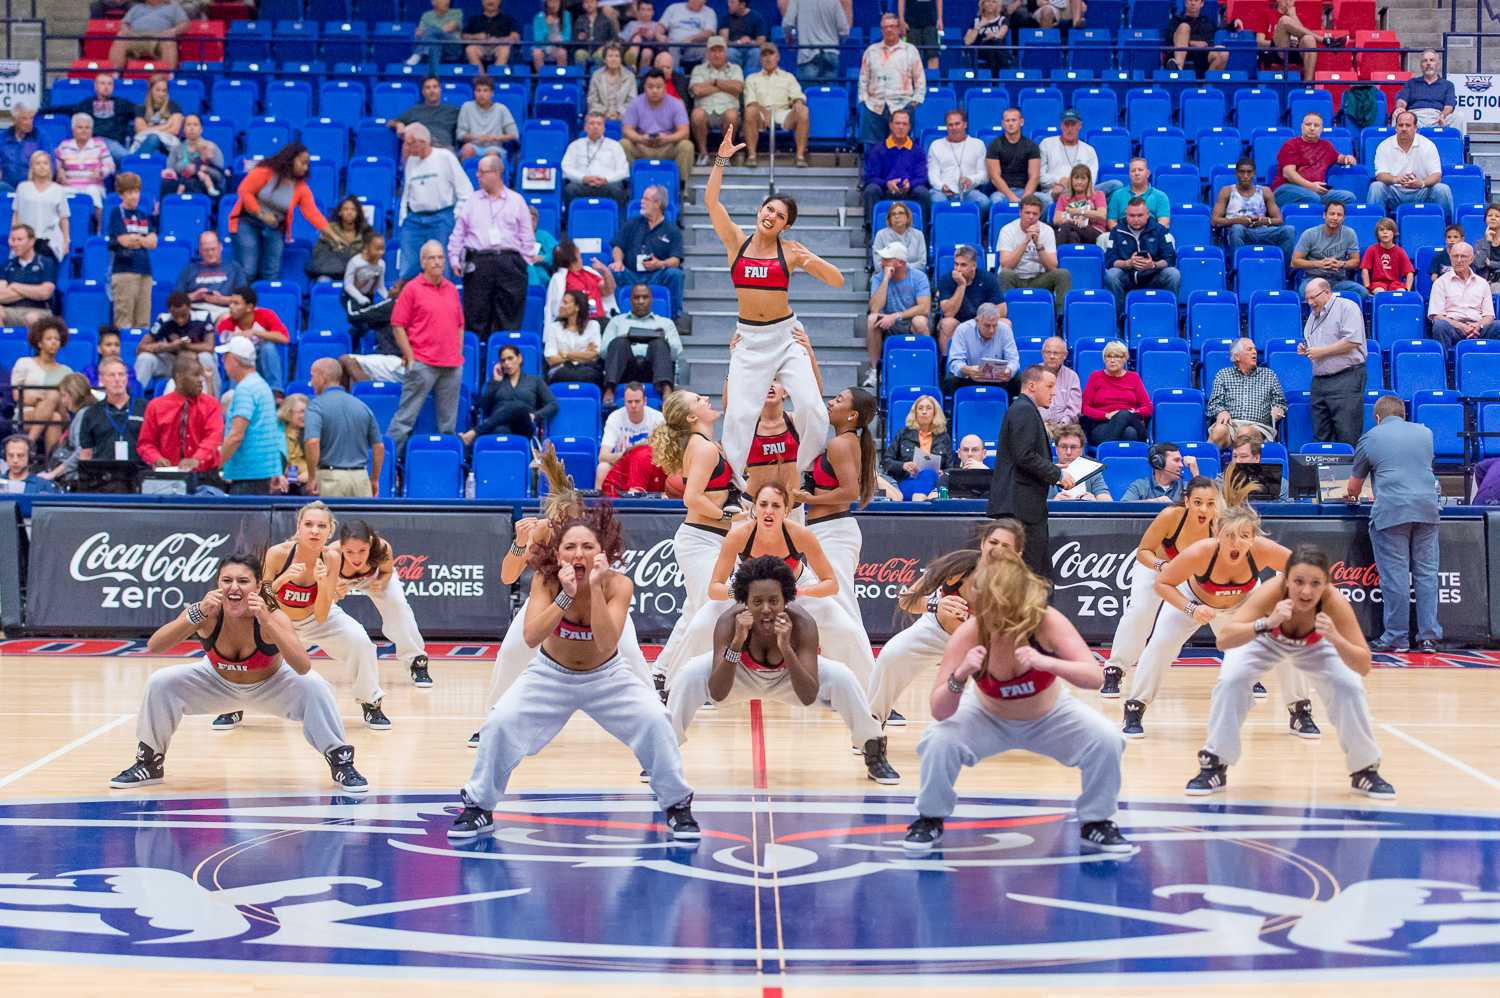 The FAU Dance Team performs at halftime during the FAU v. ECU game on Wednesday evening, Dec 3.